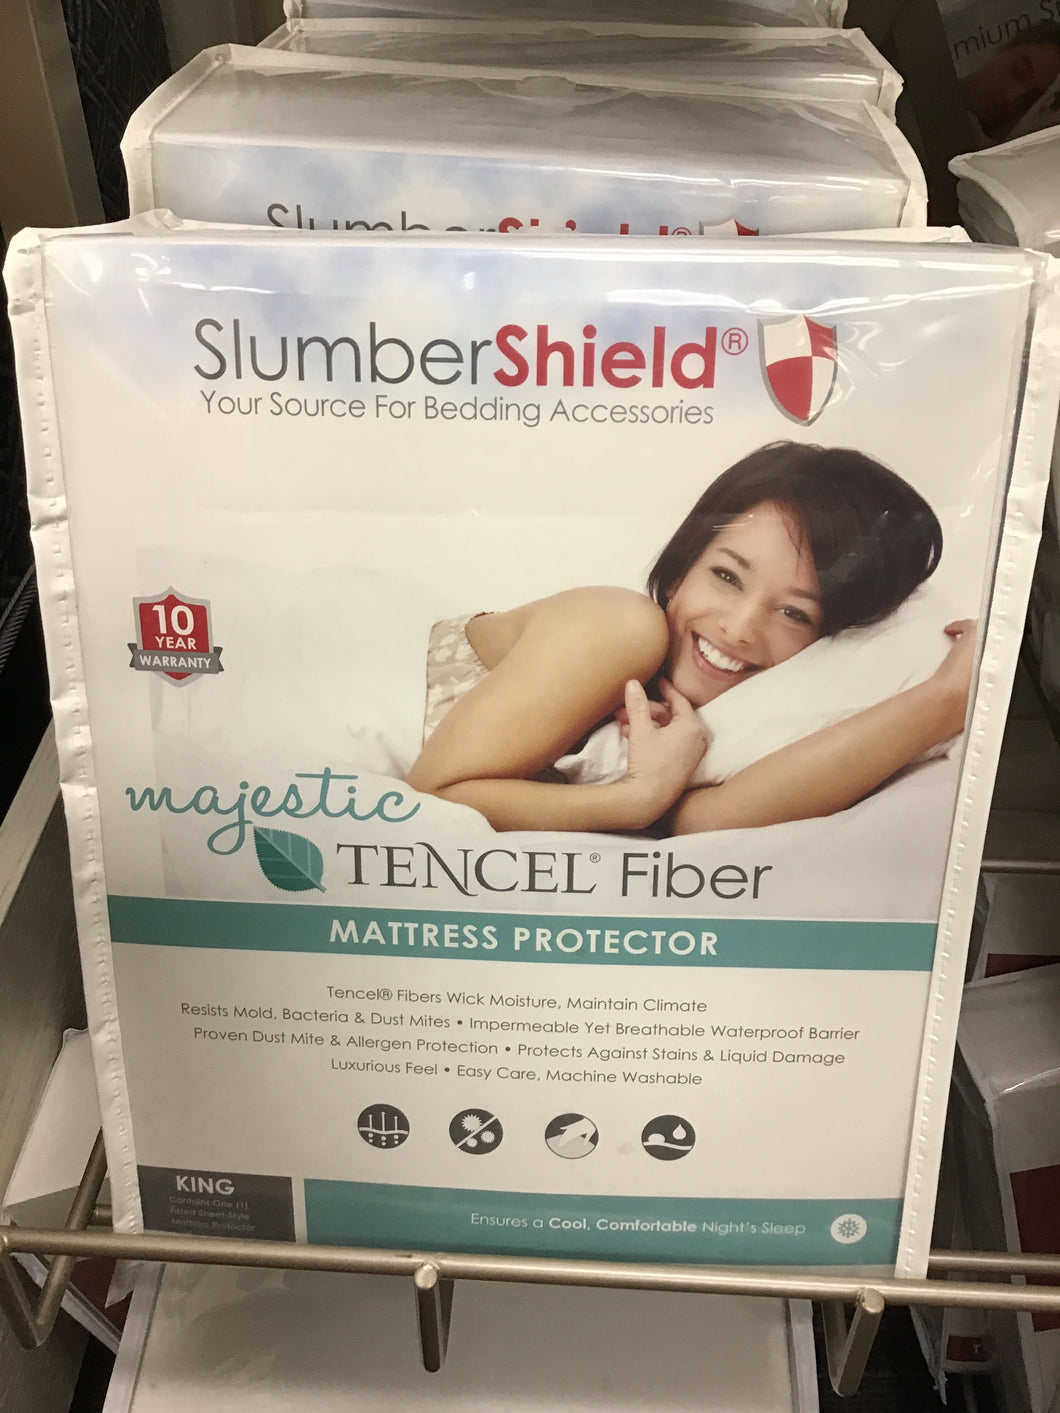 Mattress Protector, King majestic Tercel Fiber (Slumbershield)